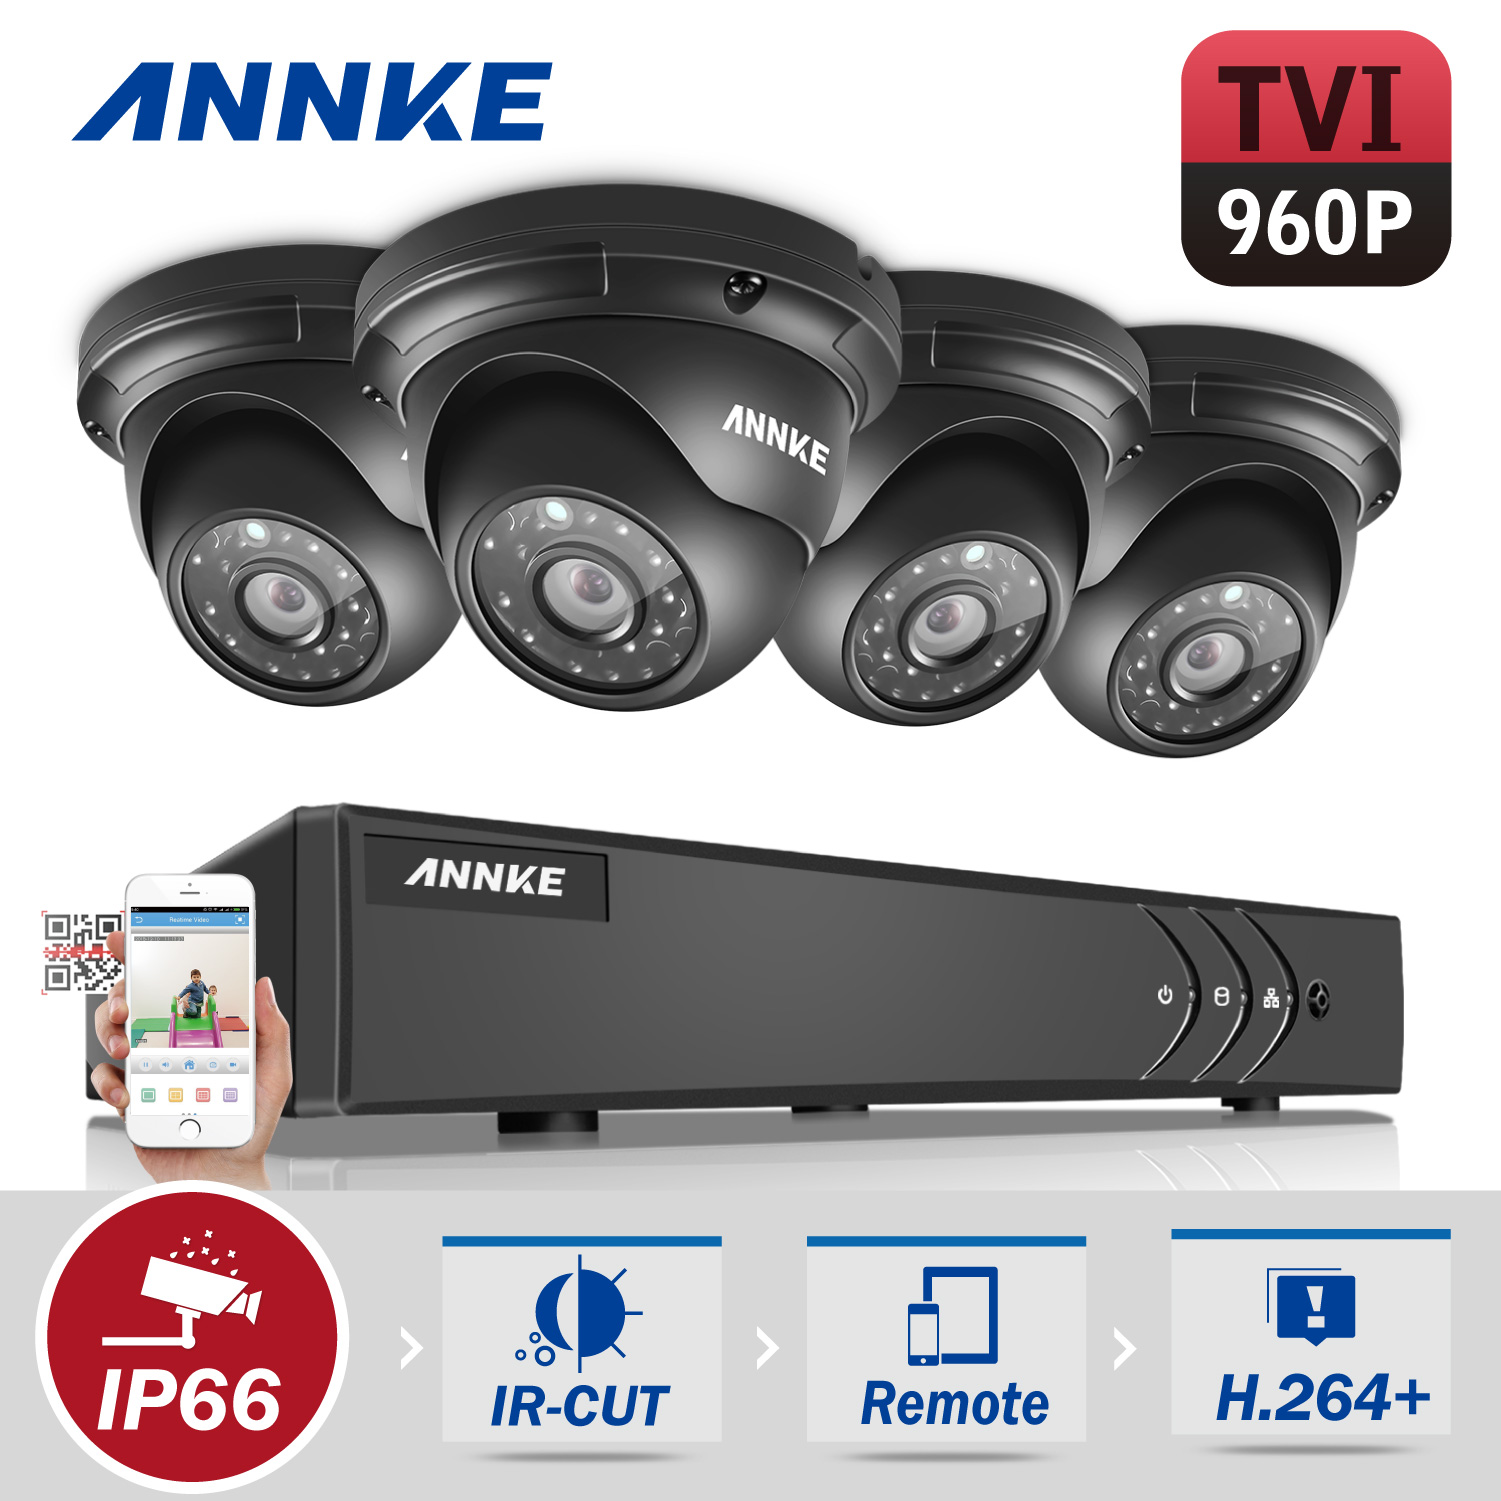 ANNKE HD 1080P 4CH CCTV System Video Recorder DVR 4PCS 960P 1.3MP Surveillance Camera IR CCTV kits for Home Security With NO HDD